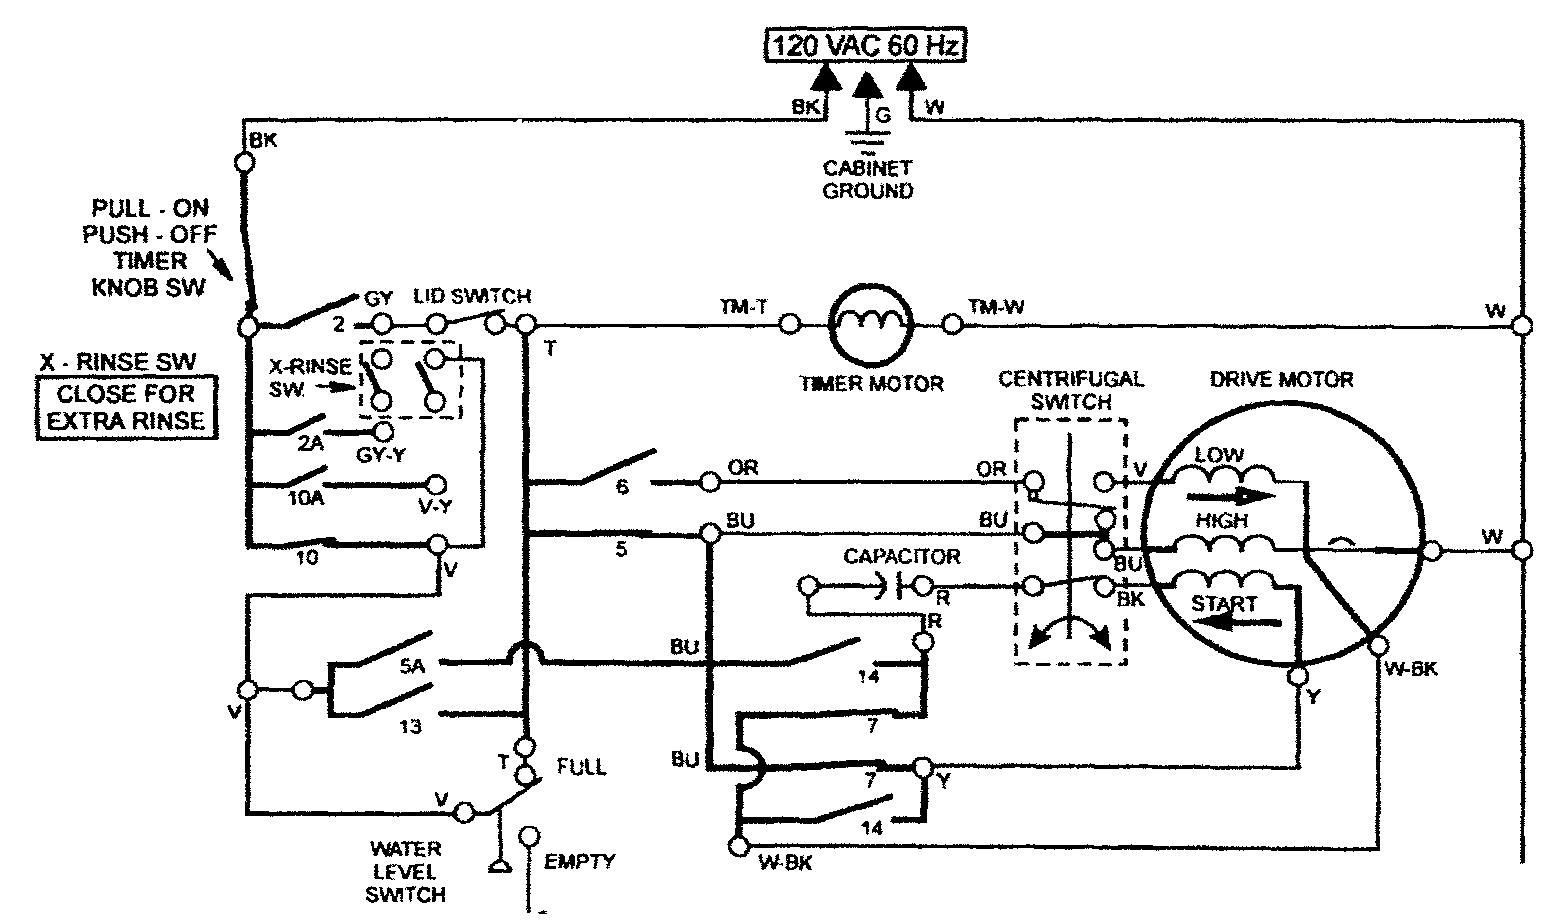 Appliance Course Module Five Figure 5 49 mat course module five sample page washing machine motor wiring diagram at soozxer.org